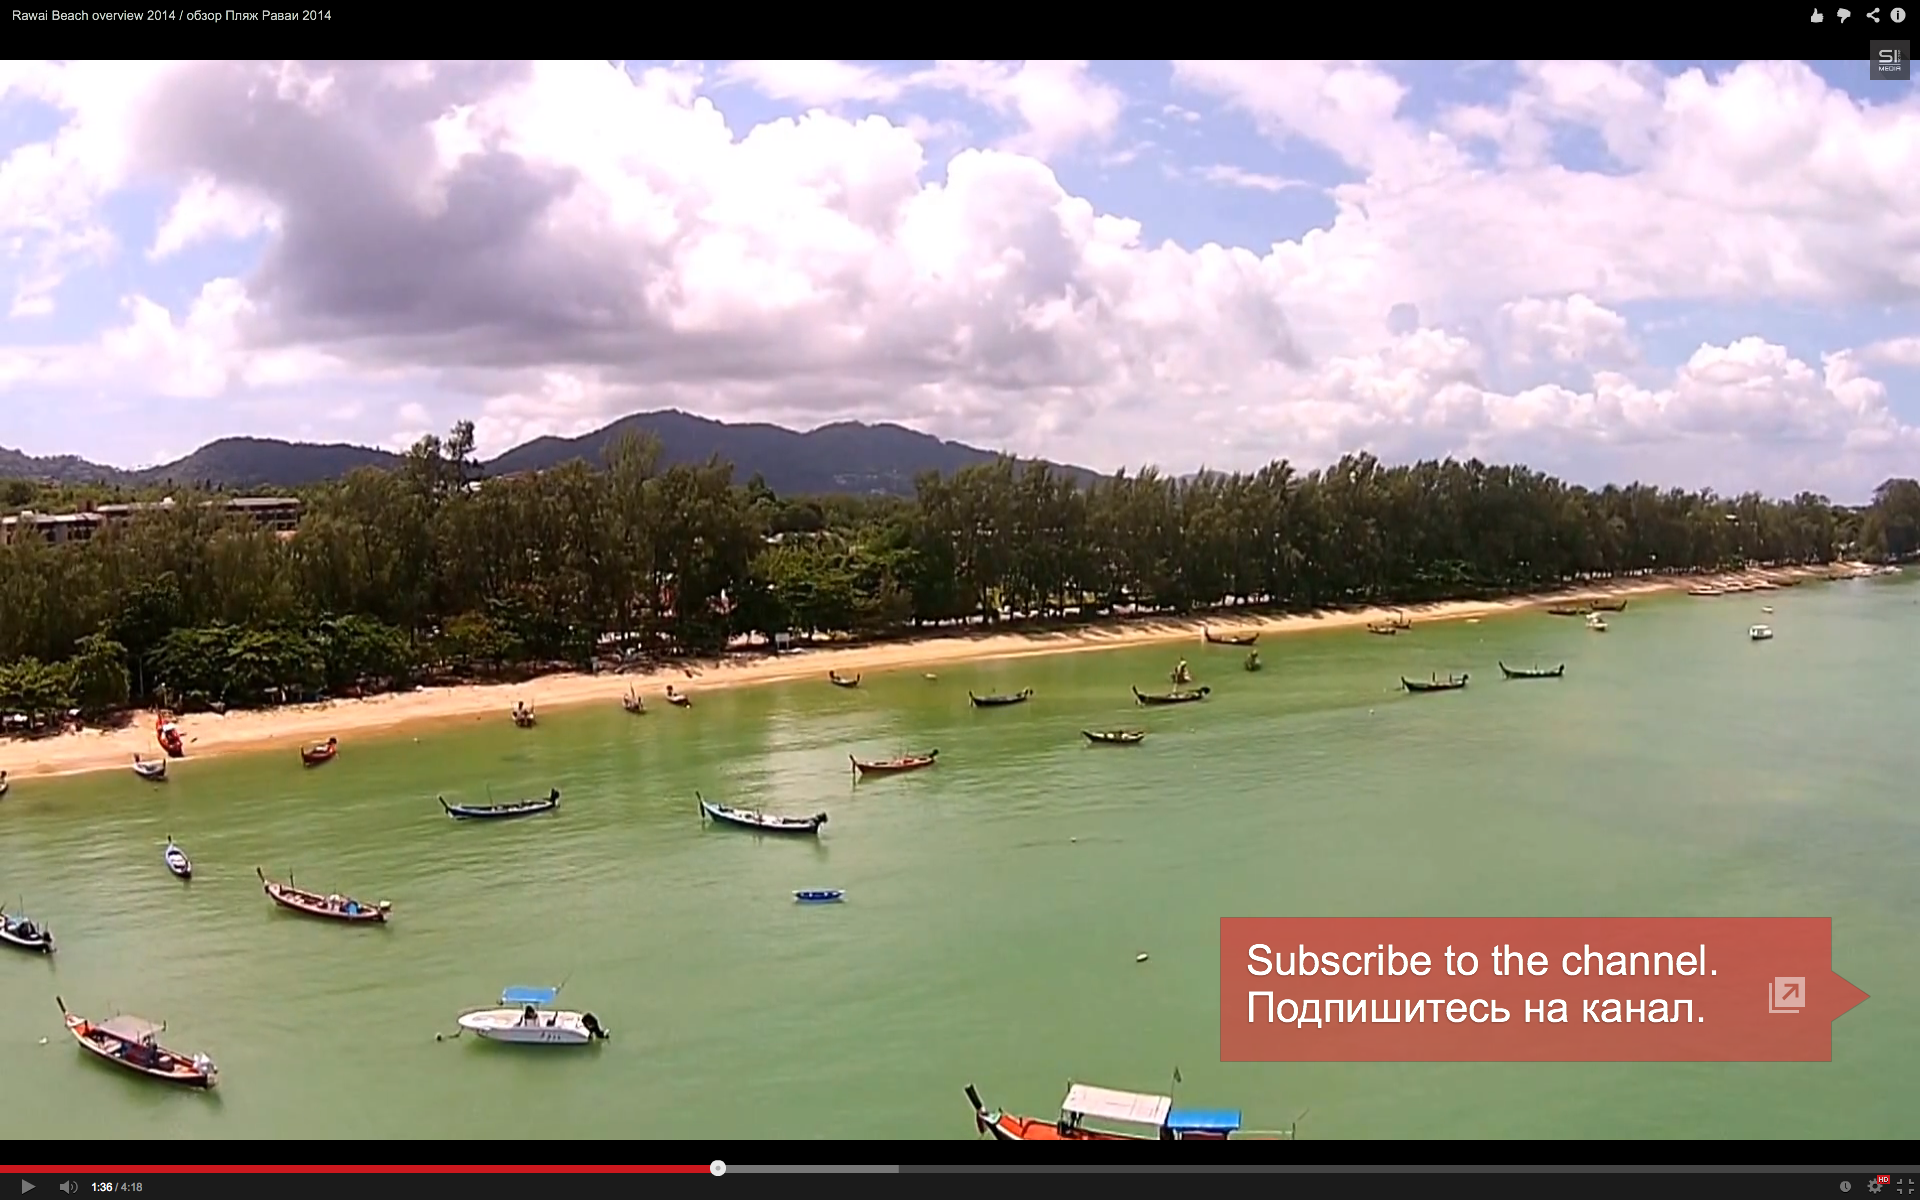 Videos Thailand. Rawai Beach. Browse Rawai Beach 2014. Rawai Beach overview 2014. Browse Rawai Beach 2014